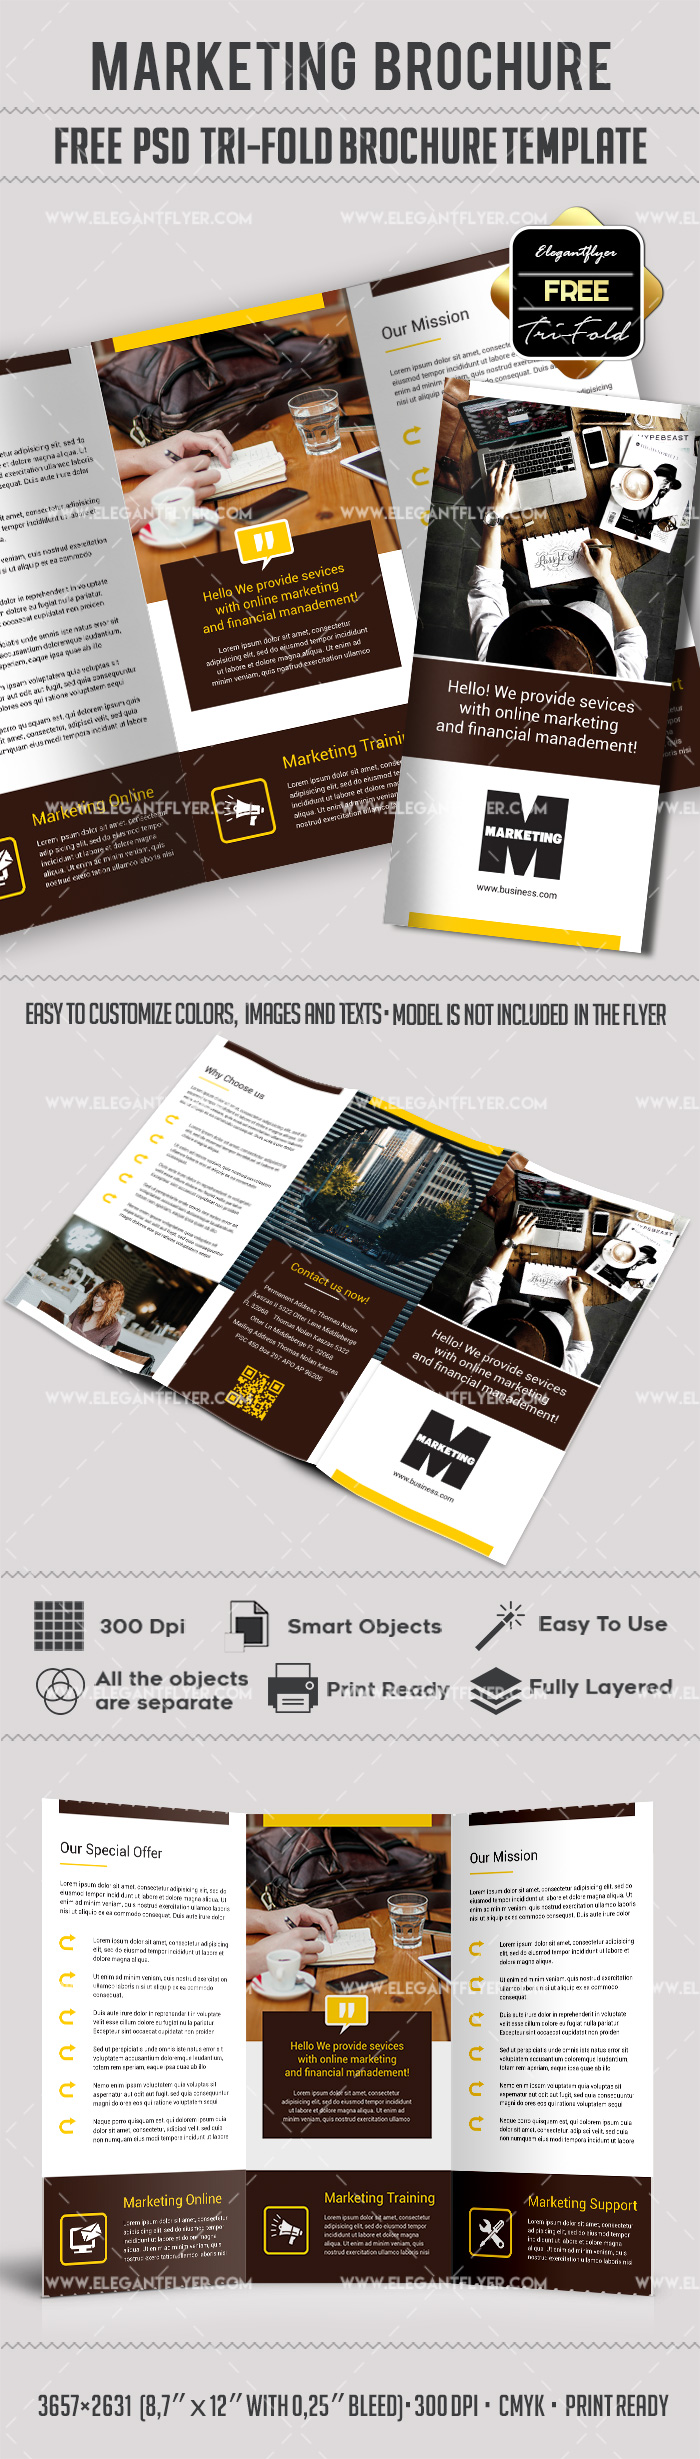 Marketing free tri fold psd brochure template by for Free psd brochure template